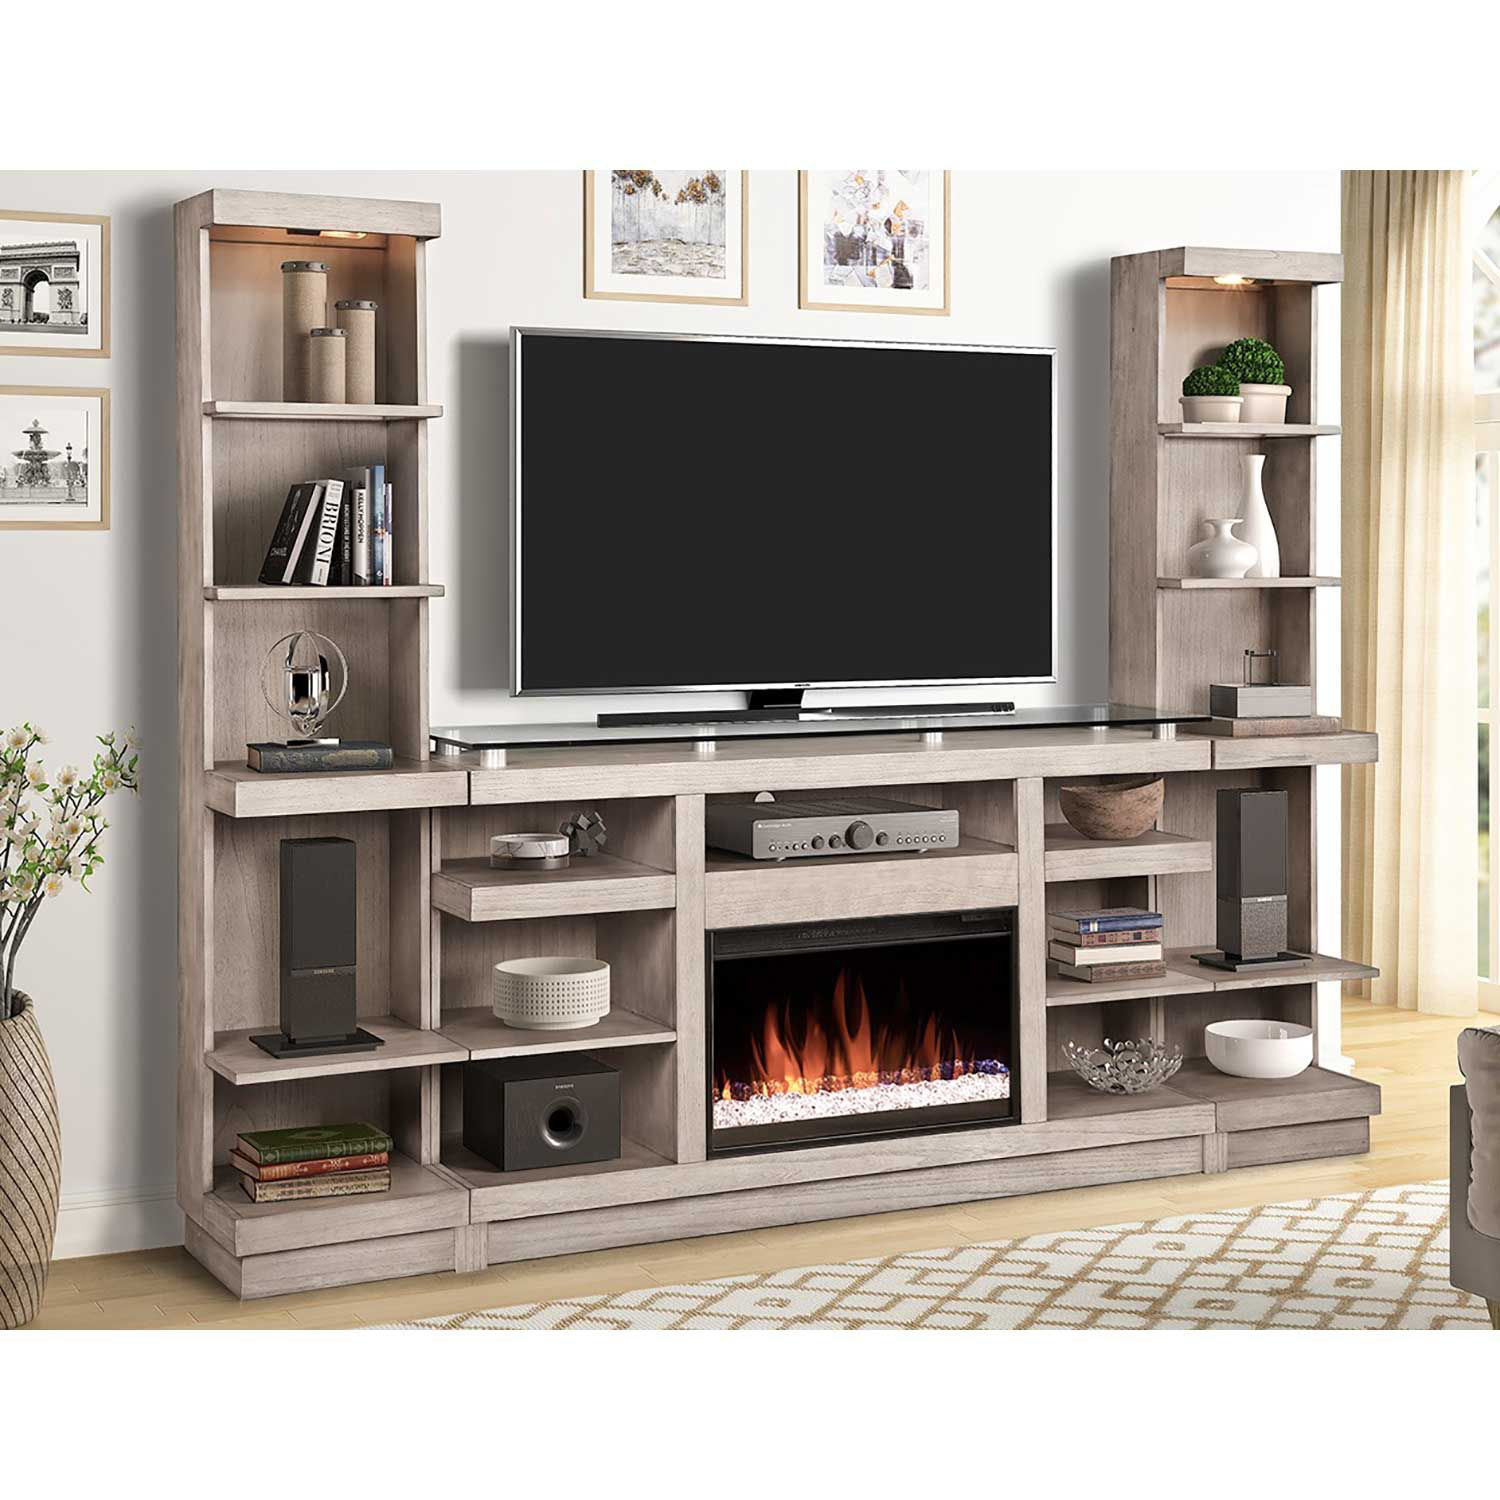 Picture of Celino Fireplace Wall Unit